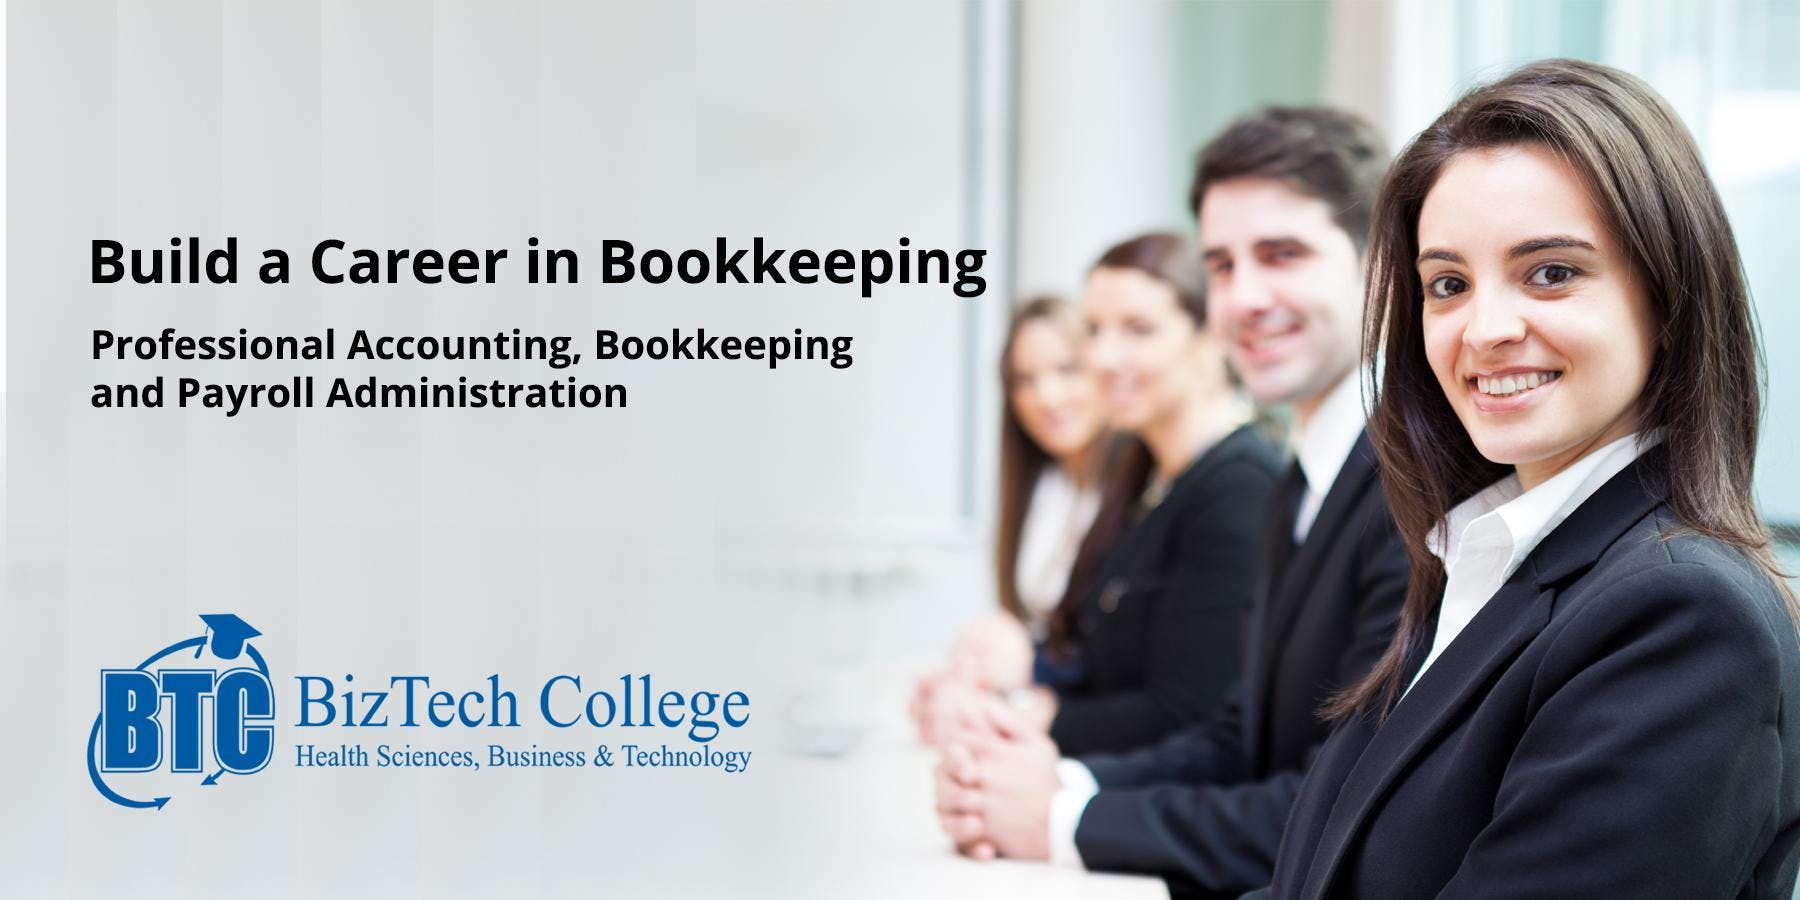 Build a Career in Bookkeeping